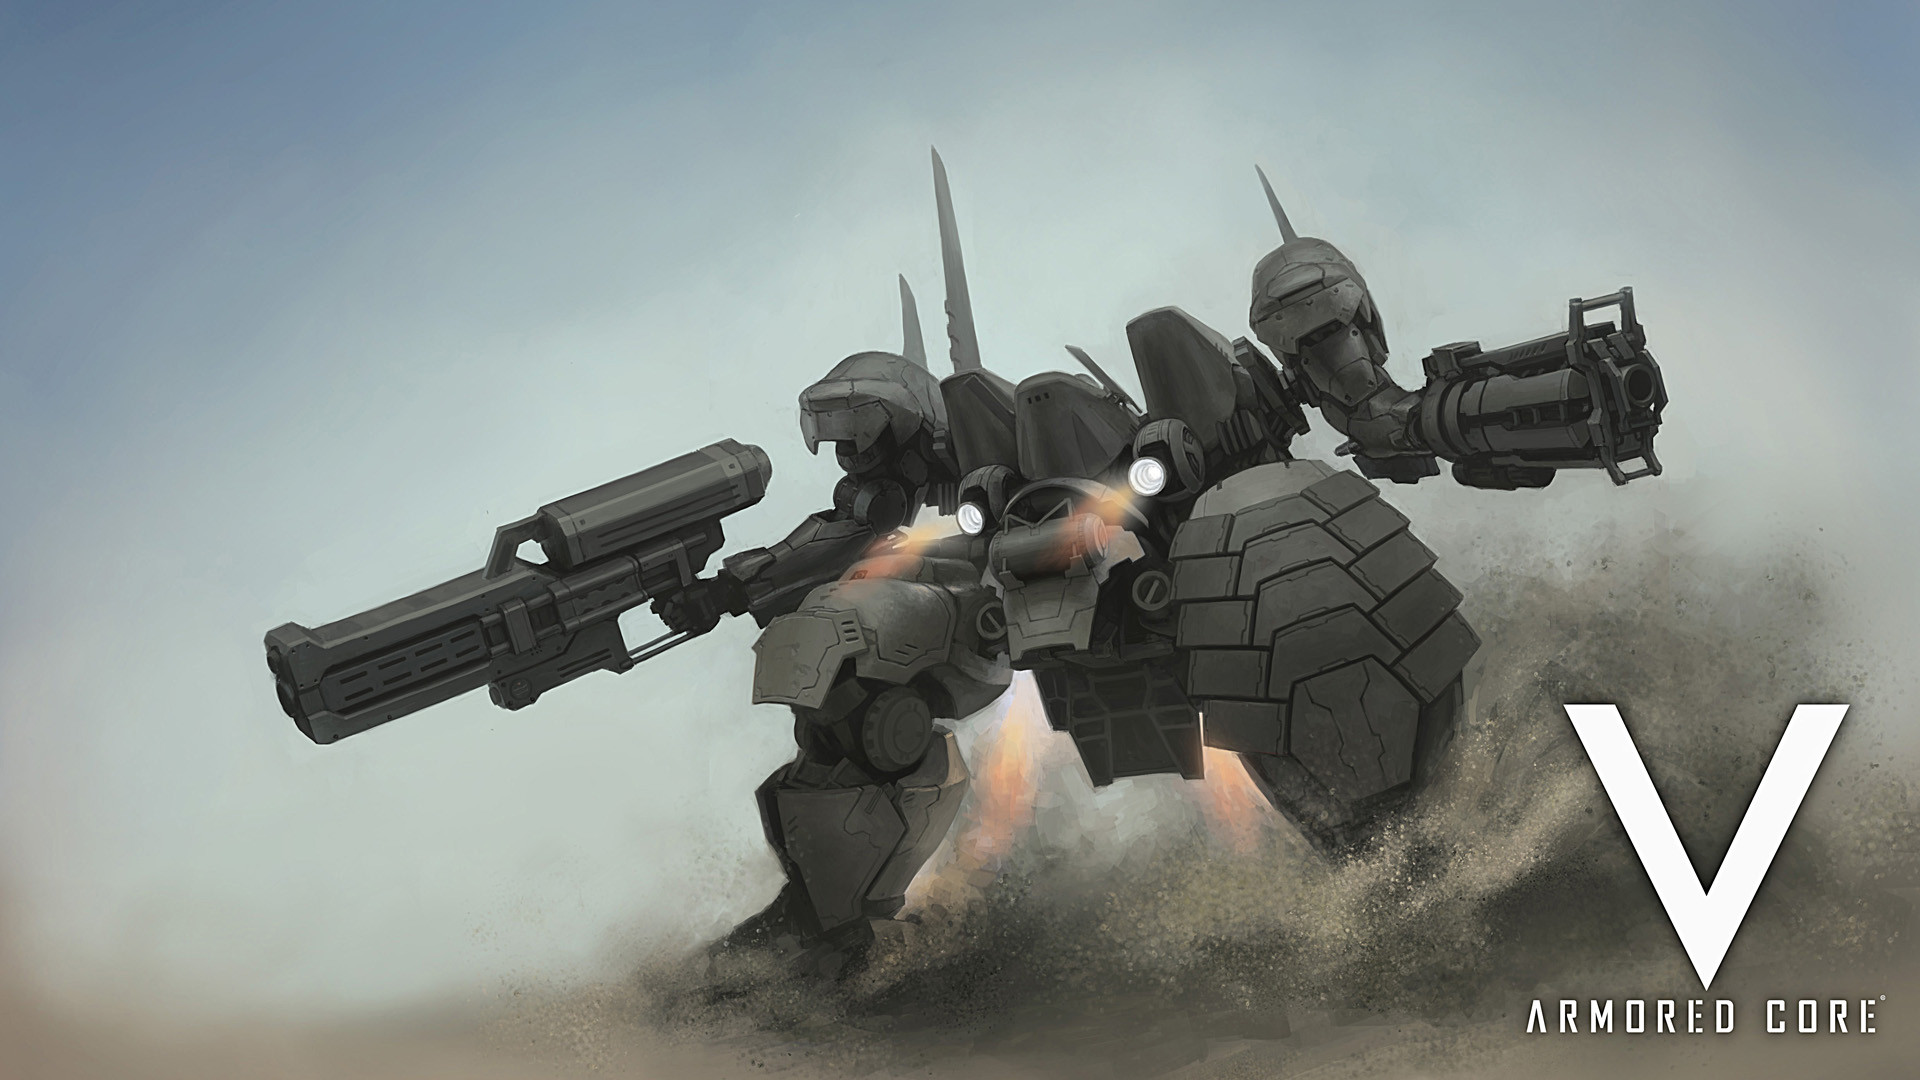 images about ARMORED CORE on Pinterest Rain, Brand new and 1280×540 Armored  core v wallpaper (31 Wallpapers)   Adorable Wallpapers   Wallpaper    Pinterest …